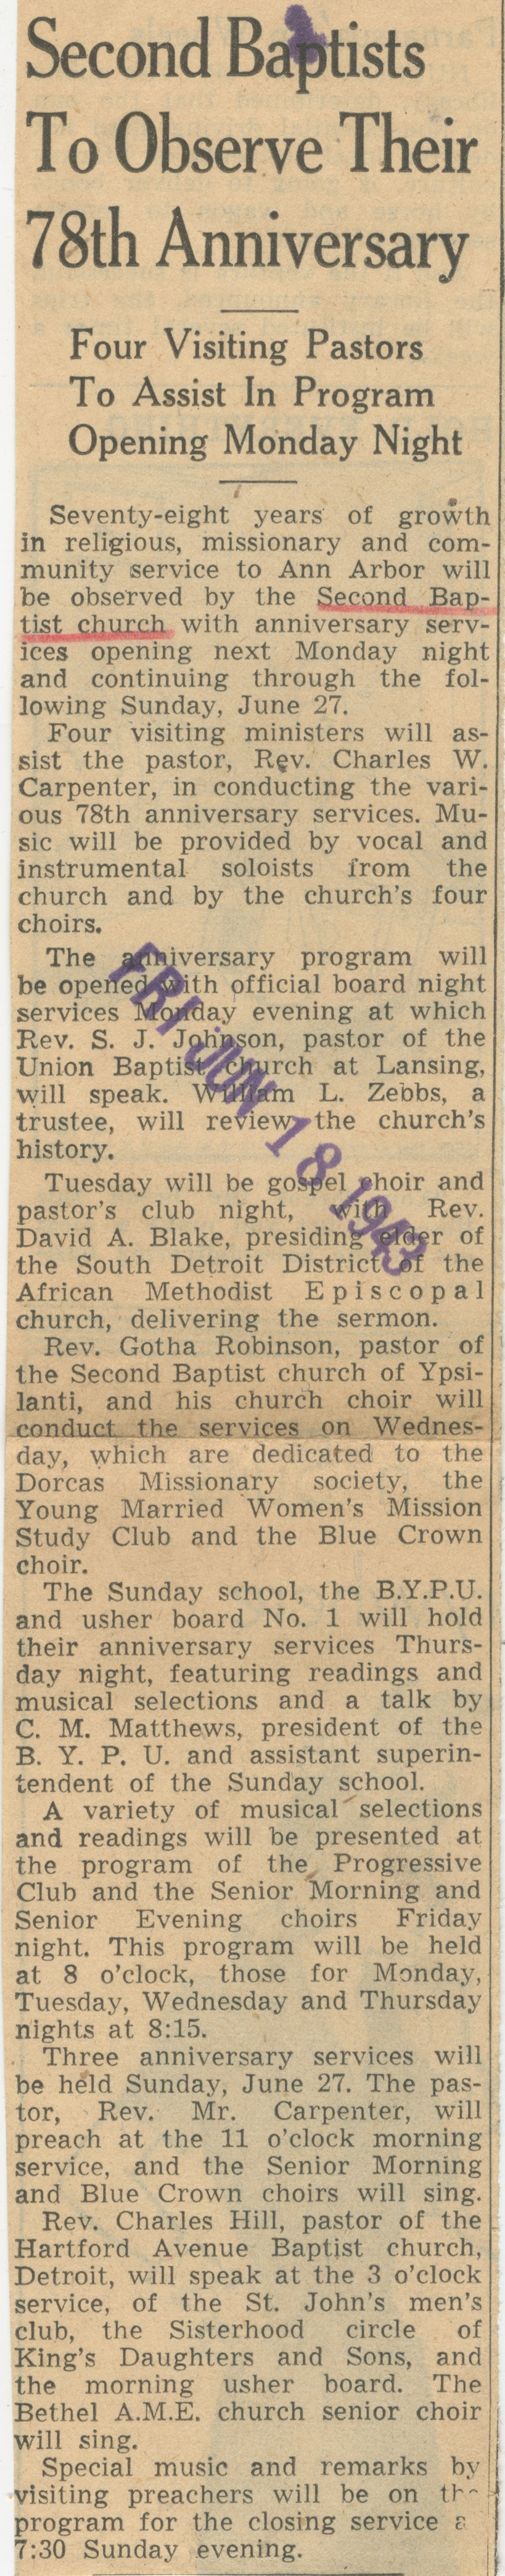 Second Baptists To Observe Their 78th Anniversary image